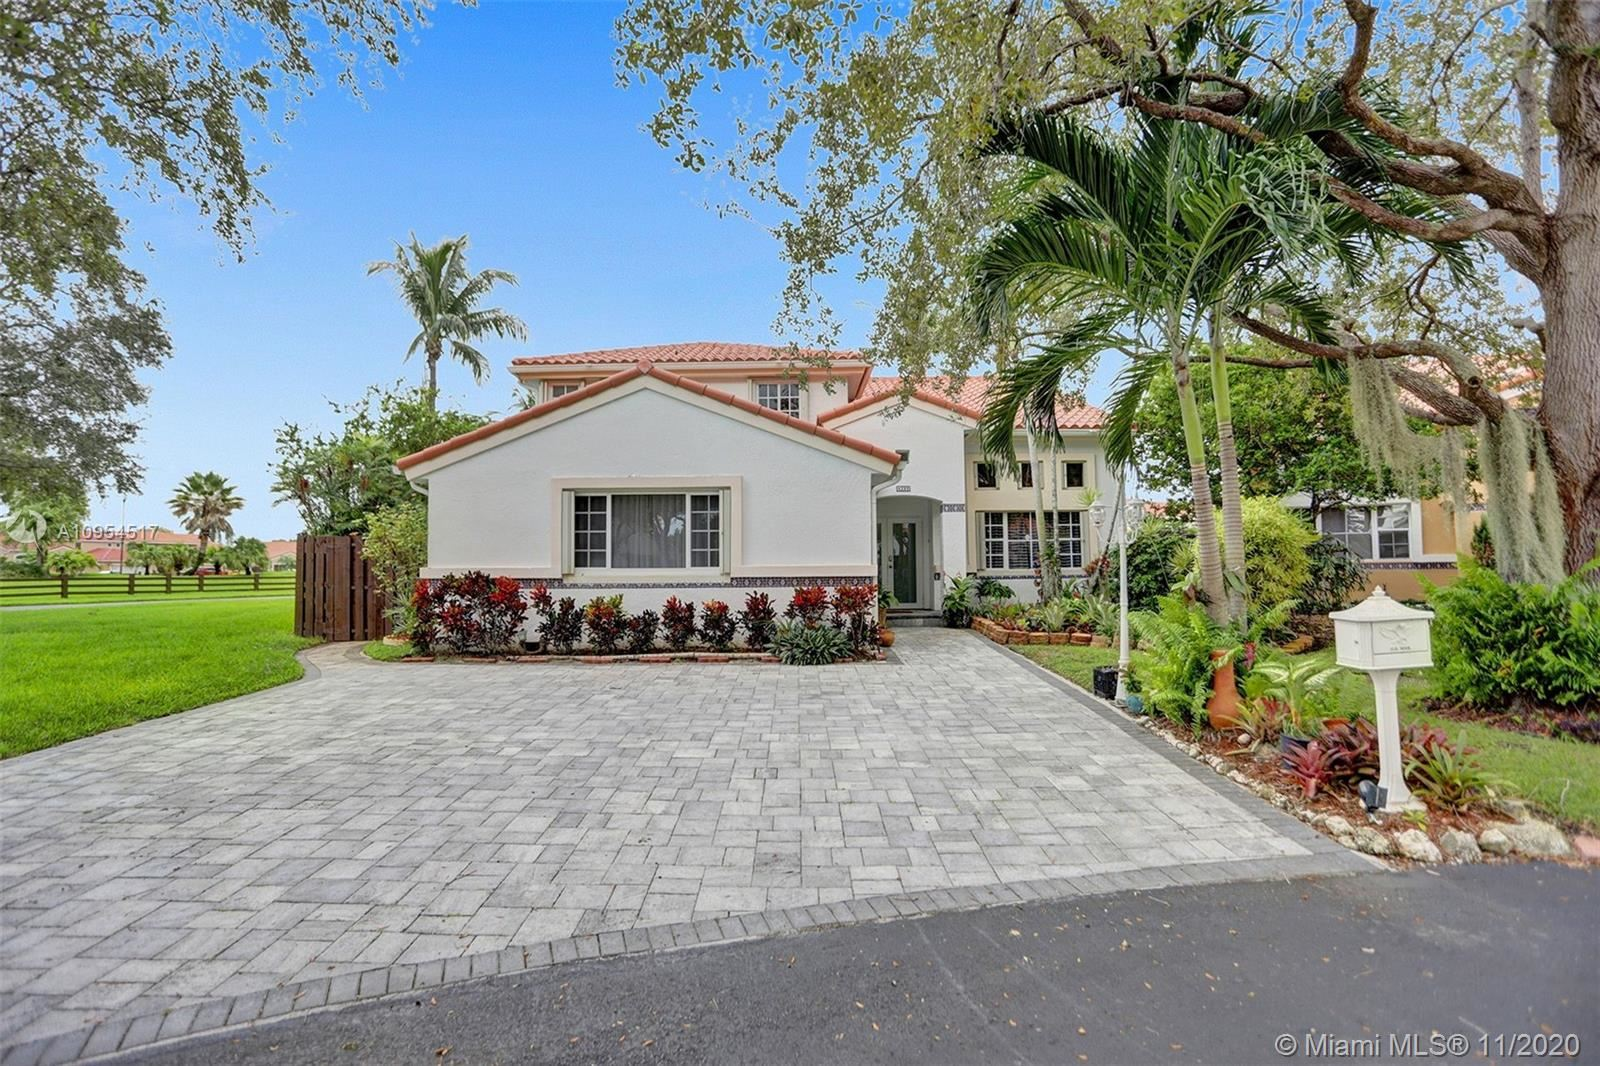 4299 SW 148th Ave, Miami, FL 33185 - #: A10954517